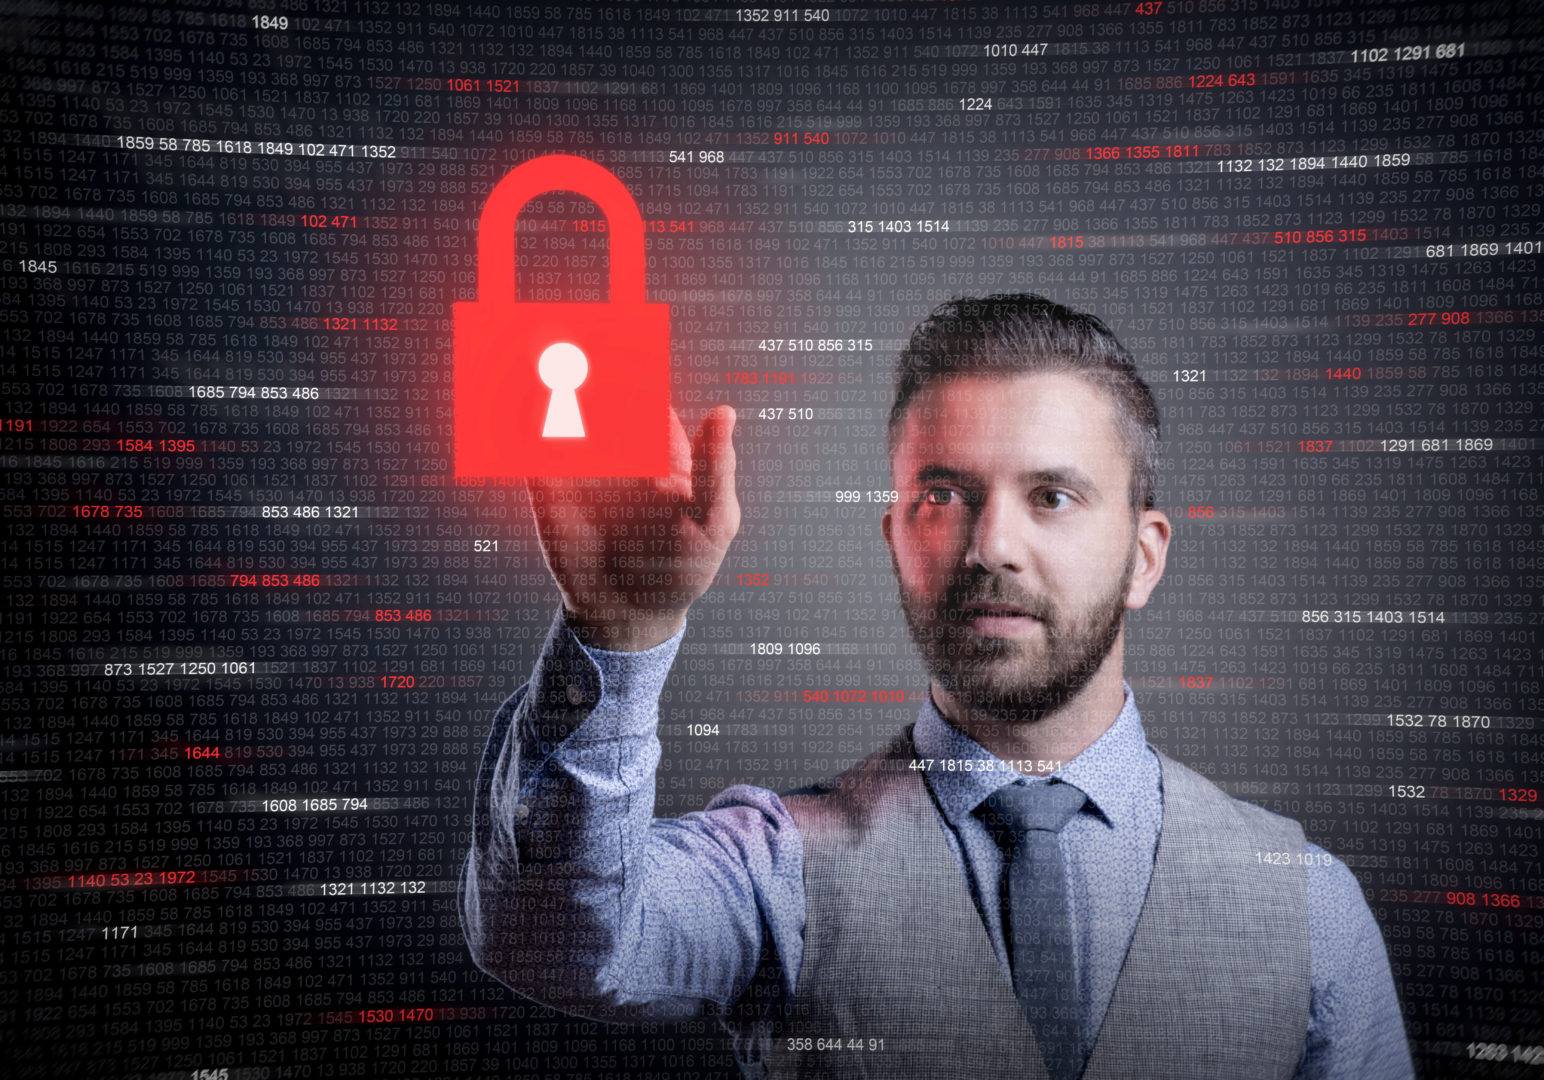 SMB Security Breach: Have Your Systems Been Compromised? How Would You Know?